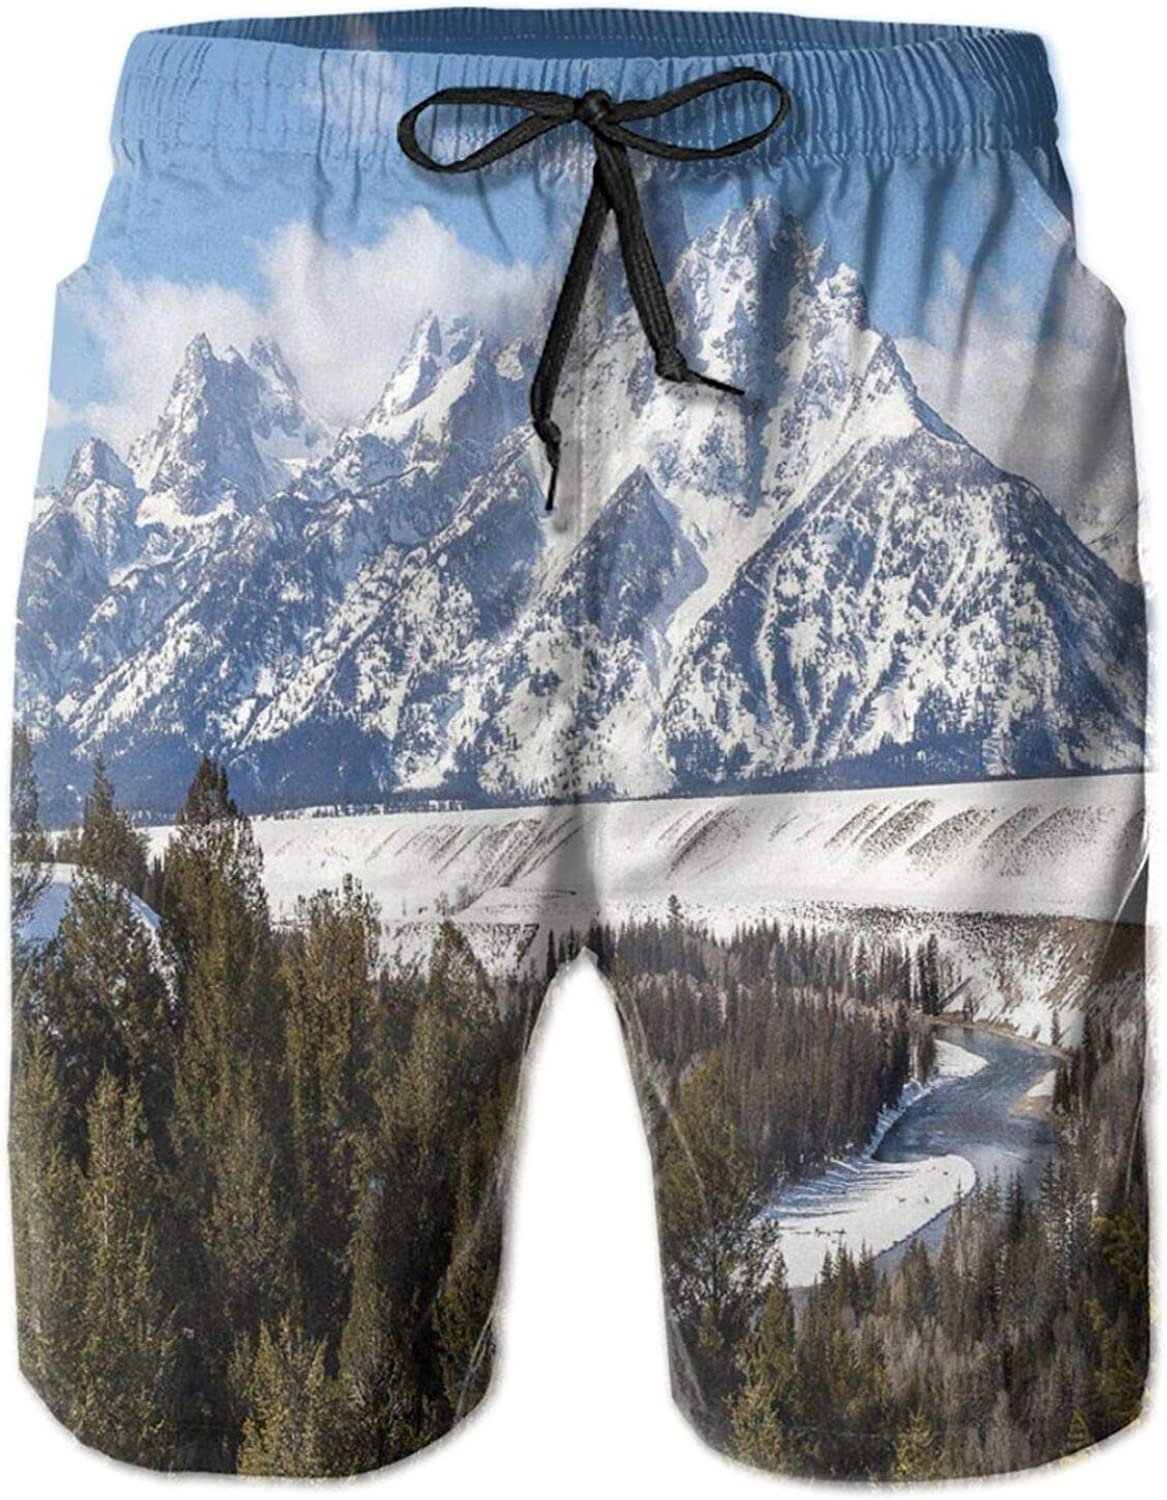 Magnificent Landscape of The Grand Teton Snowy and Cloudy Peaks with Trees Mens Swim Shorts Casual Workout Short Pants Drawstring Beach Shorts,XXL